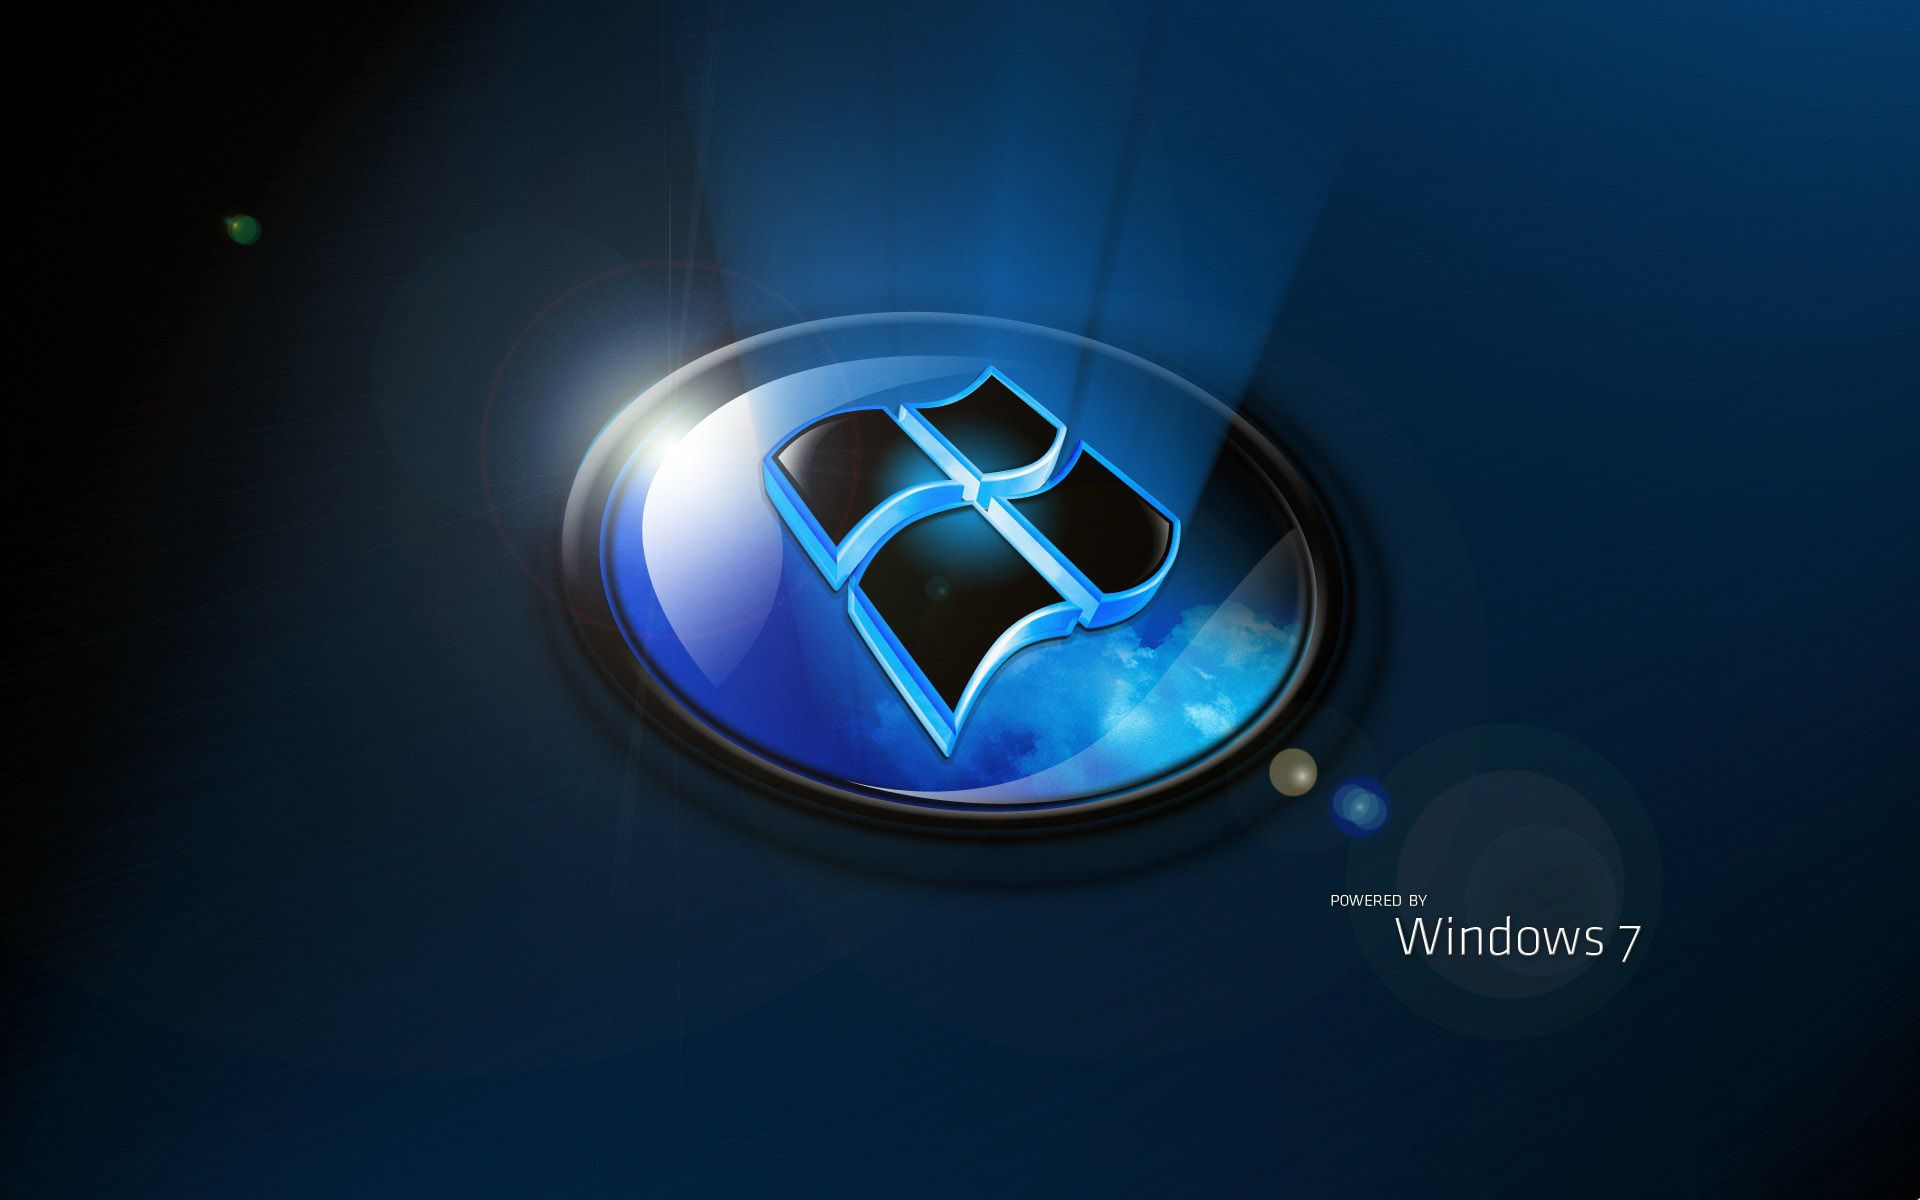 Desktop Wallpaper Hd 3d Windows 7 Papel De Parede 3d Papeis De Parede Parede 3d